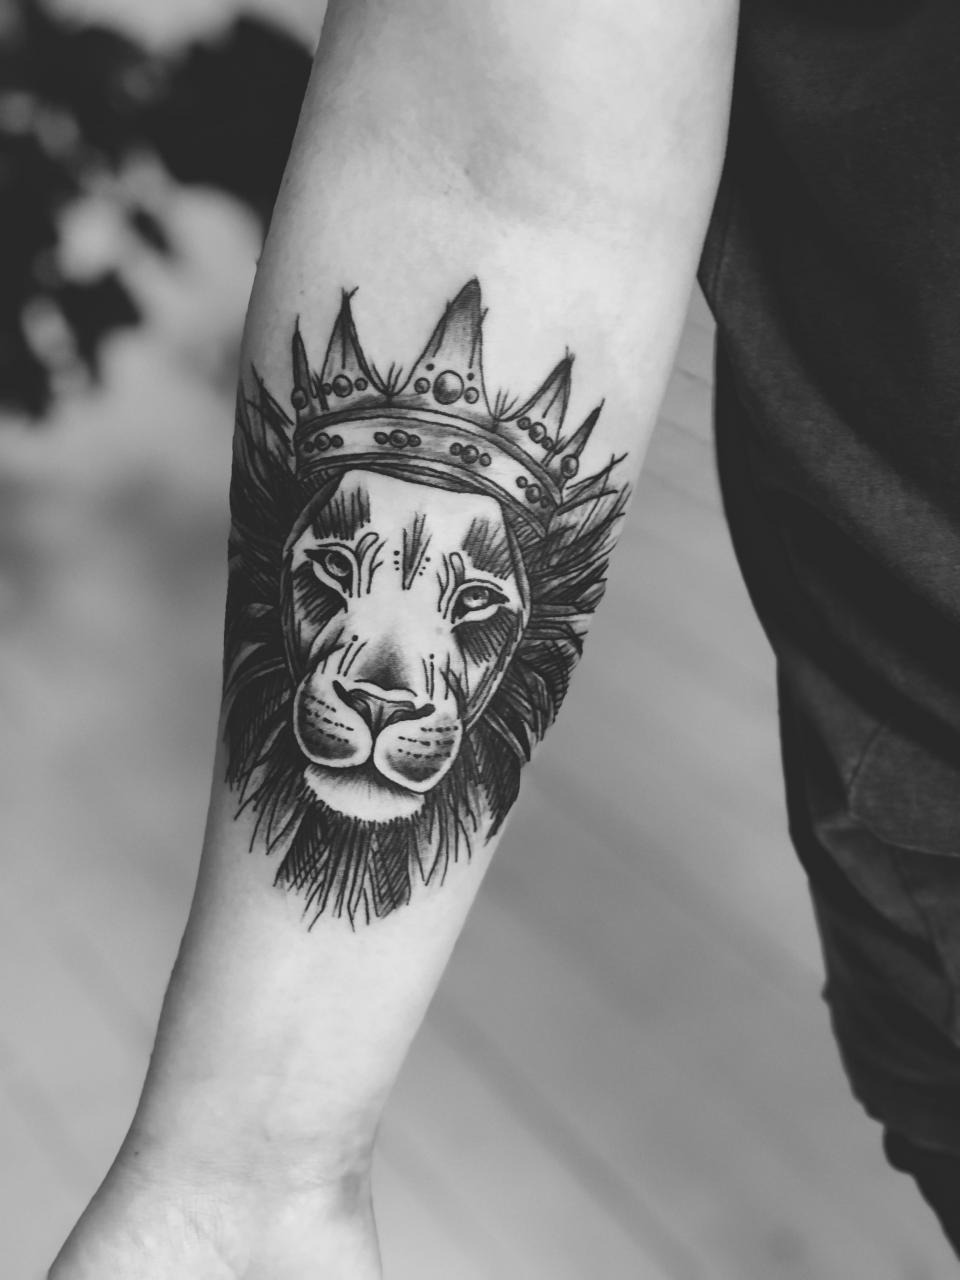 My first Tattoo made some months ago at Face It Tattoo, in a small town called Frista.